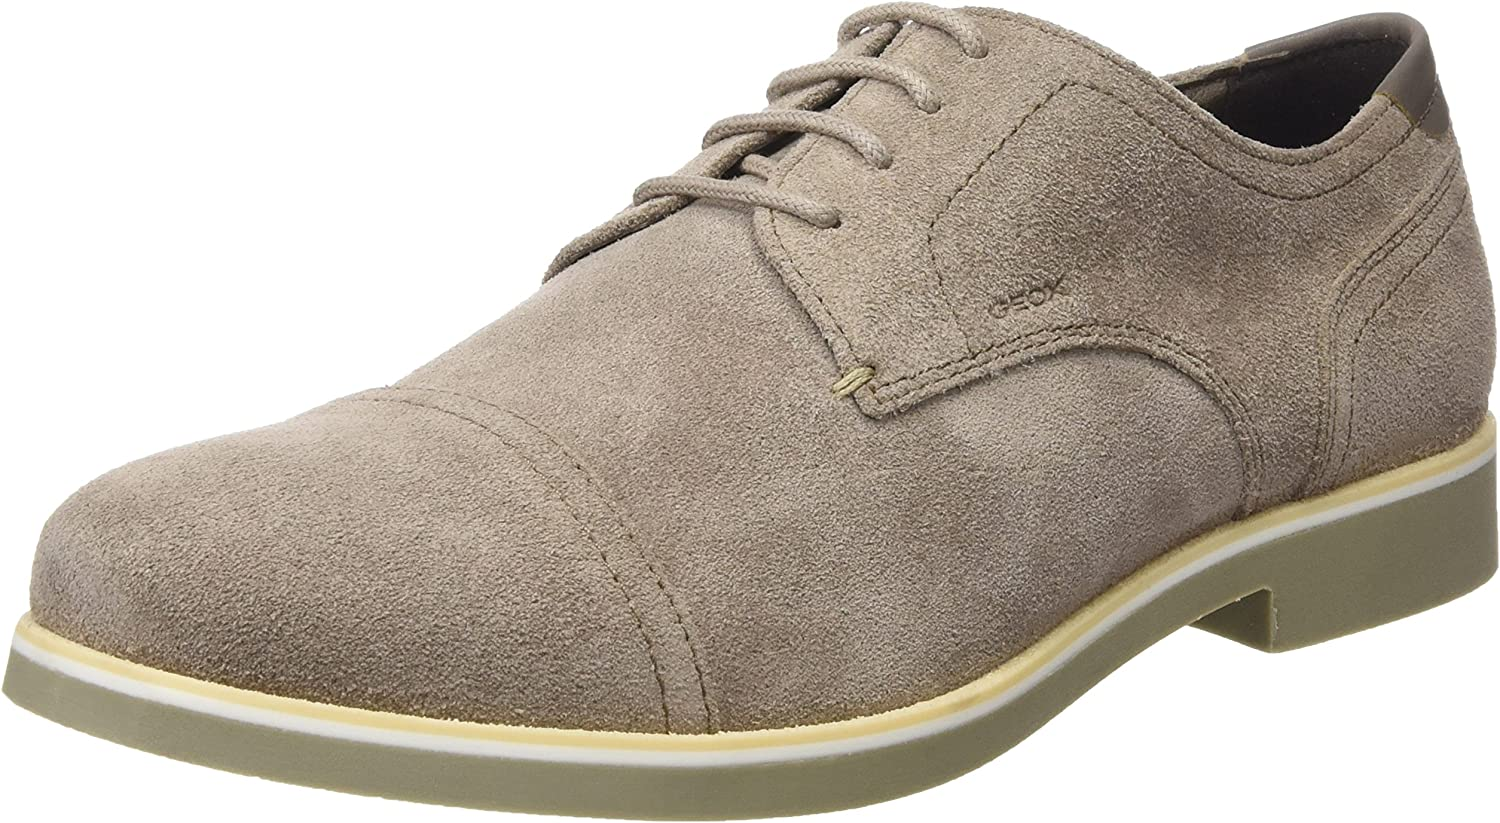 Geox Men's Our shop OFFers the best service Derby Lace-Up Beige 40% OFF Cheap Sale